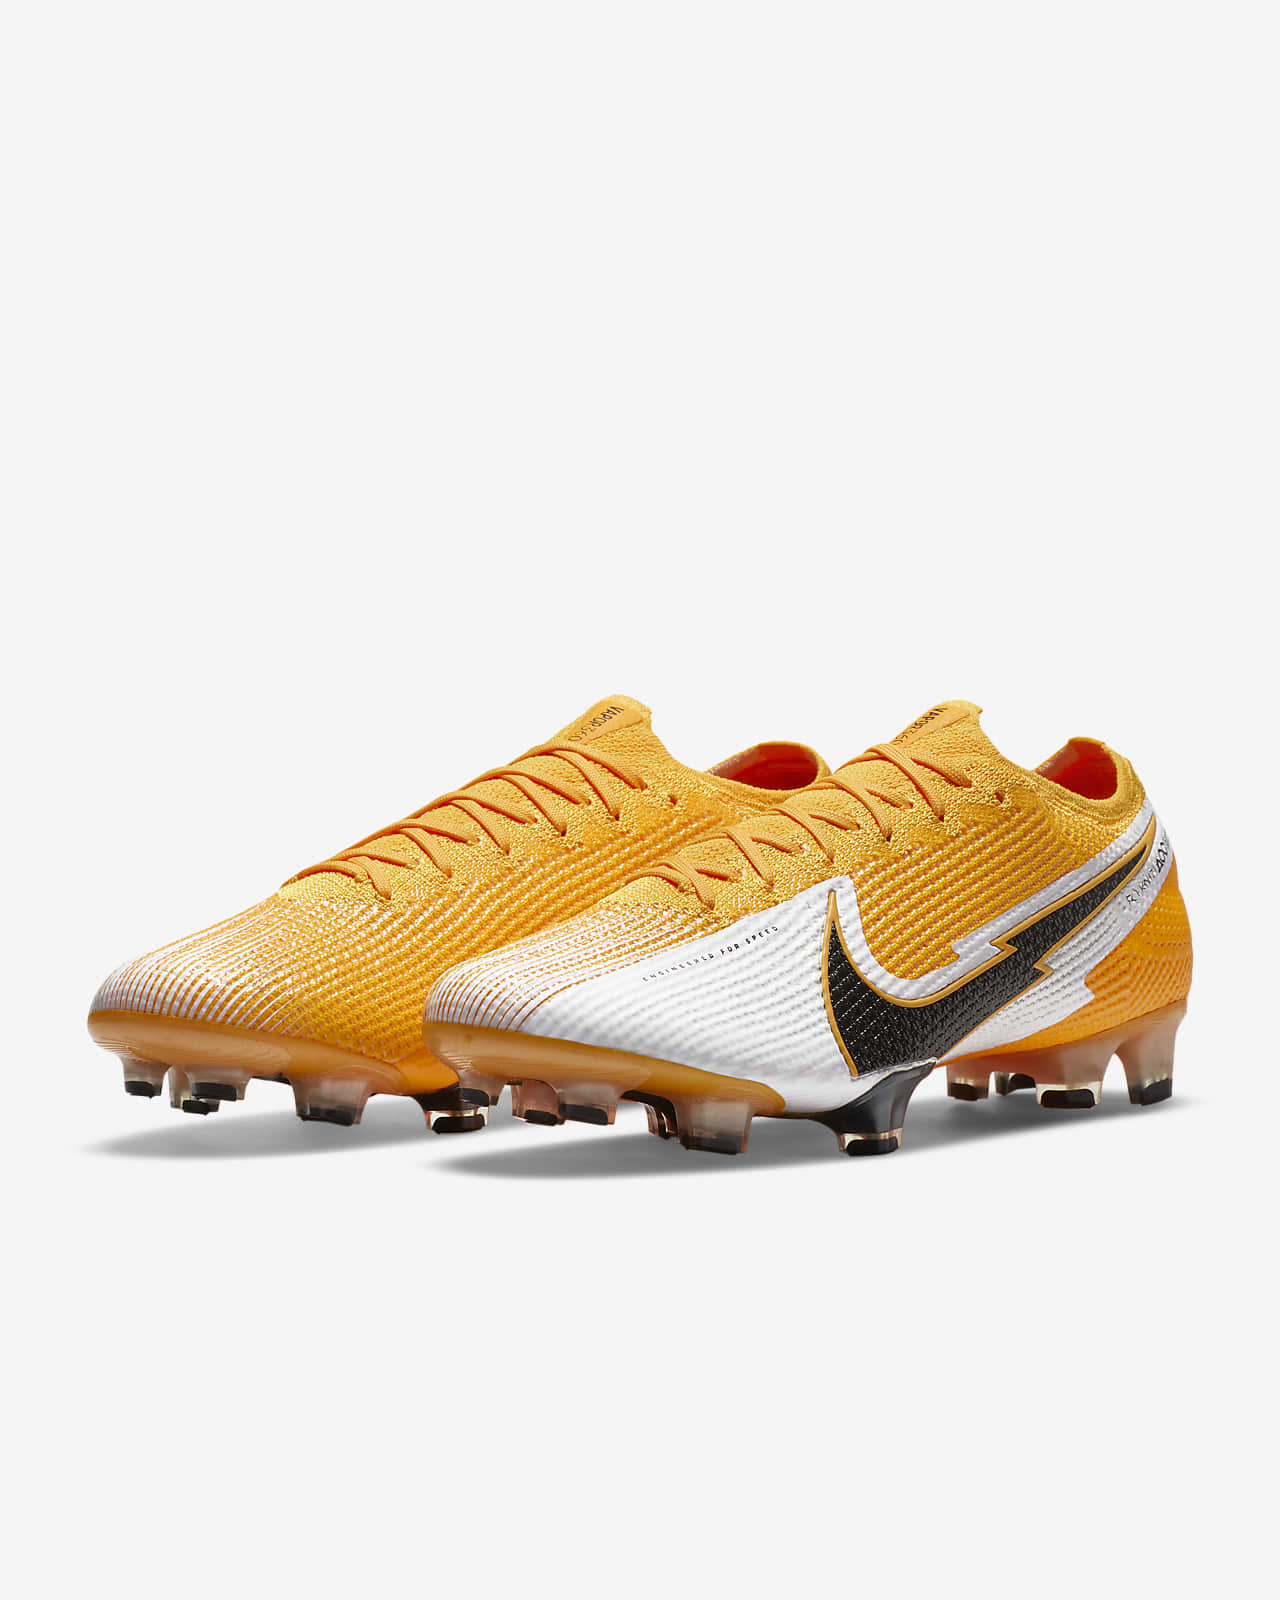 Limited Time Deals New Deals Everyday Que Significa Nike Mercurial Off 76 Buy